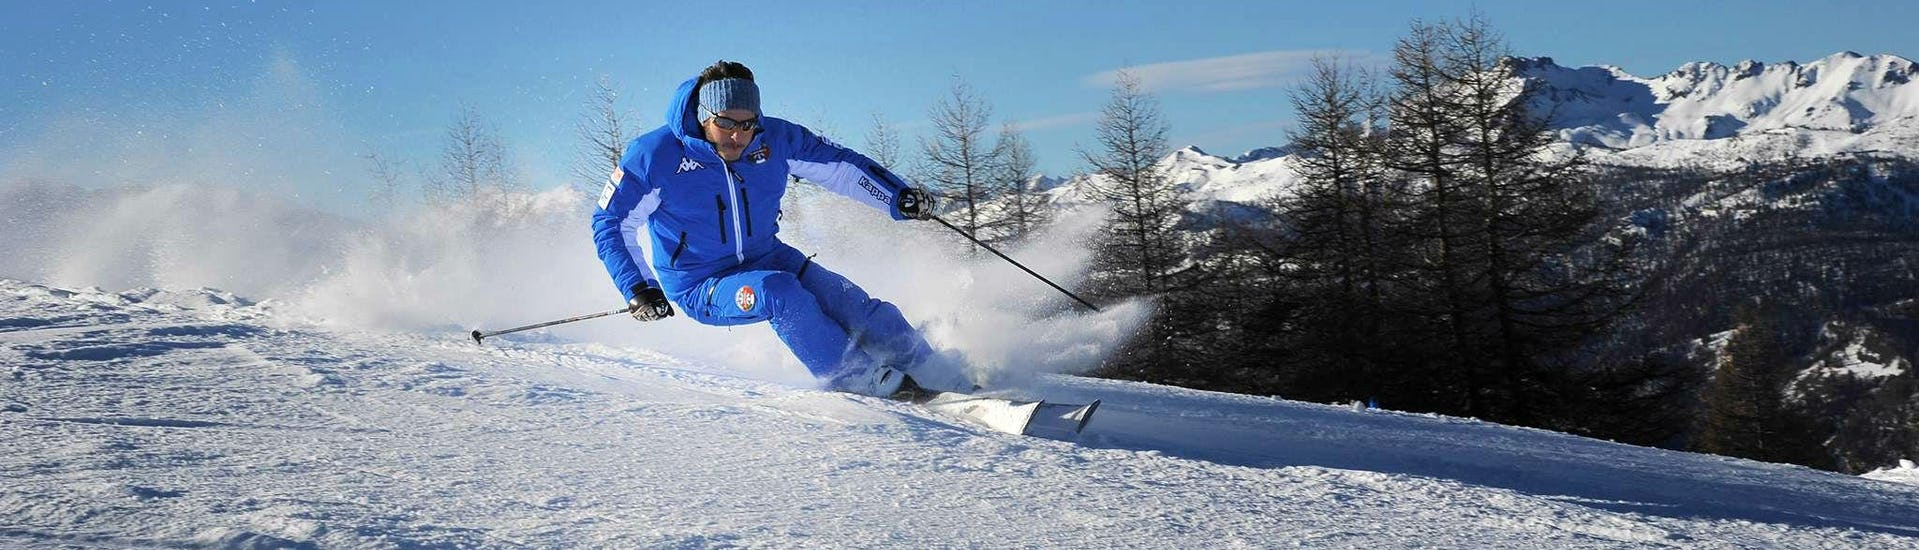 A ski instructor from the ski school Scuola di Sci Olimpionica in Sestriere is demonstrating the correct carving technique during one of the Ski Lessons for Adults - Holidays - Advanced.